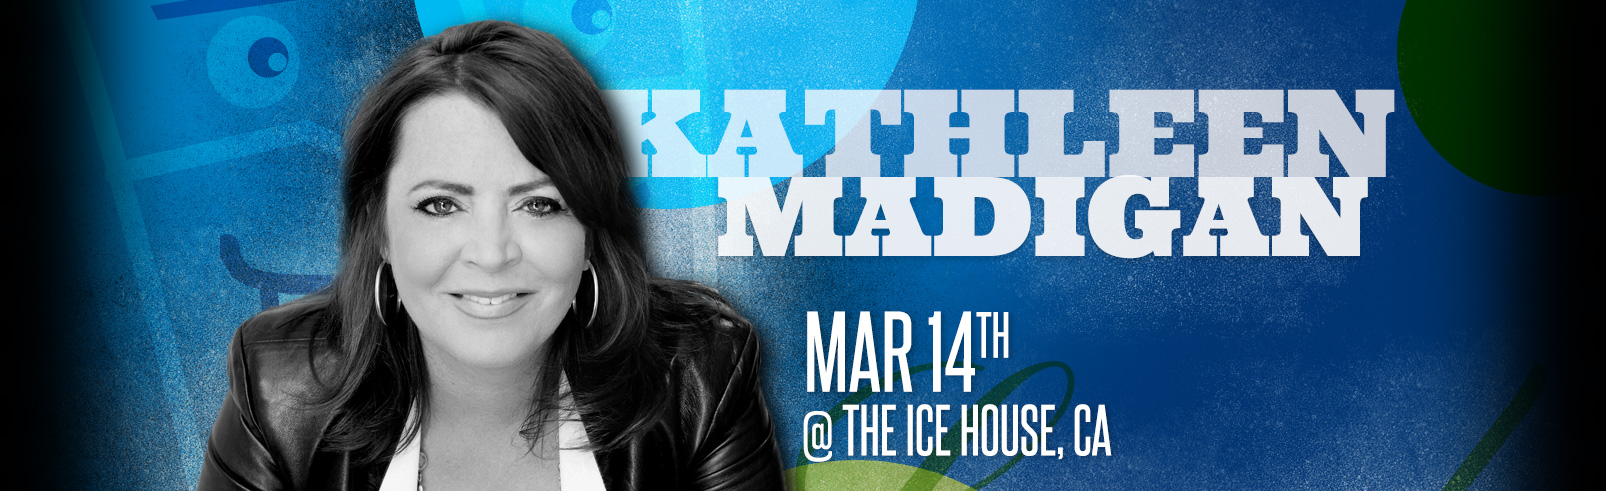 Kathleen Madigan @ The Ice House